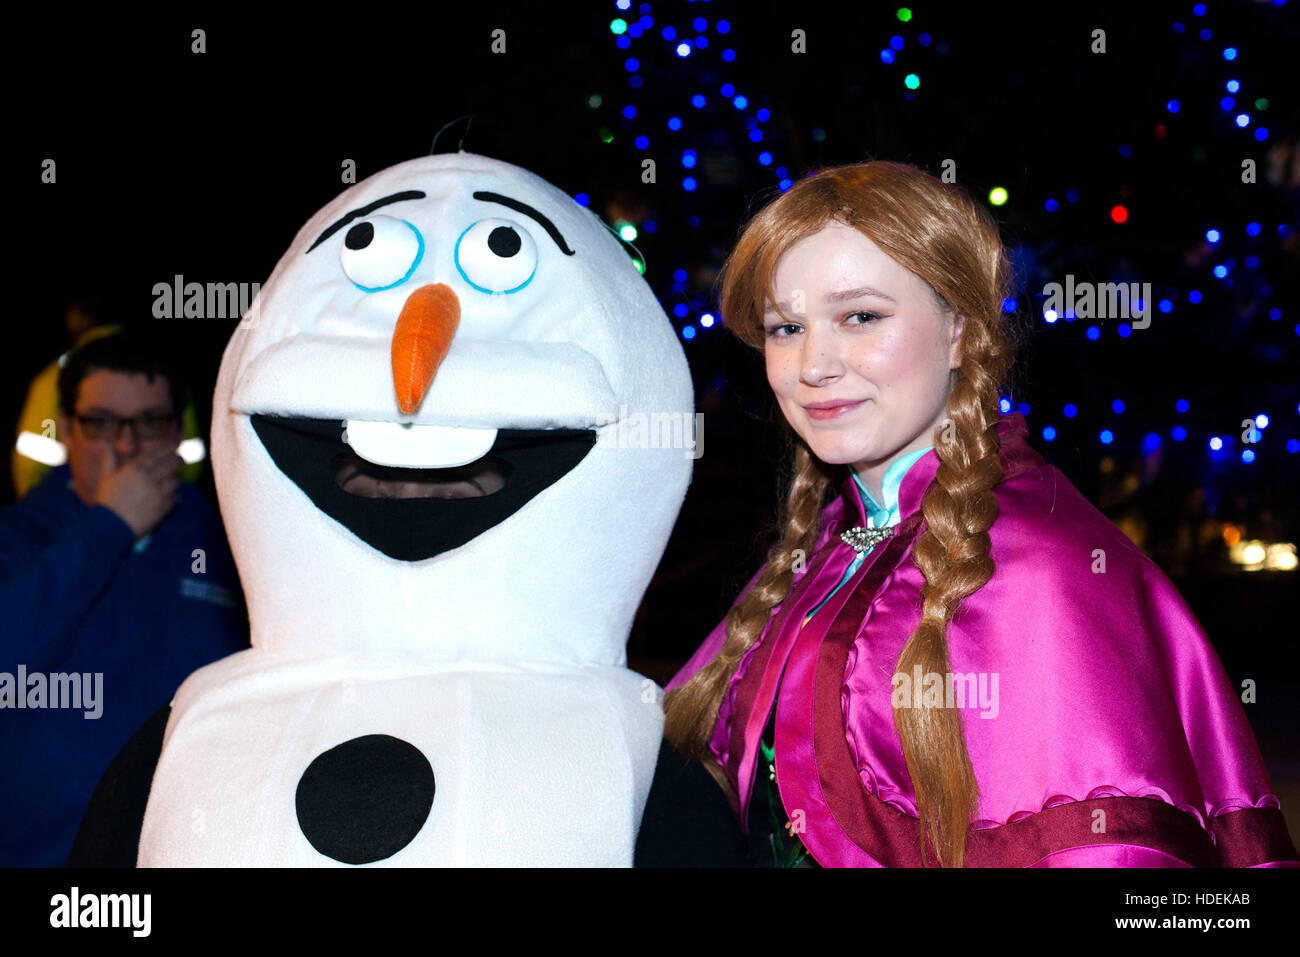 Caerphilly, Wales. November 25th 2016. Two individuals dressed up as Olaf and Anna from Frozen handing out sweets - Stock Image